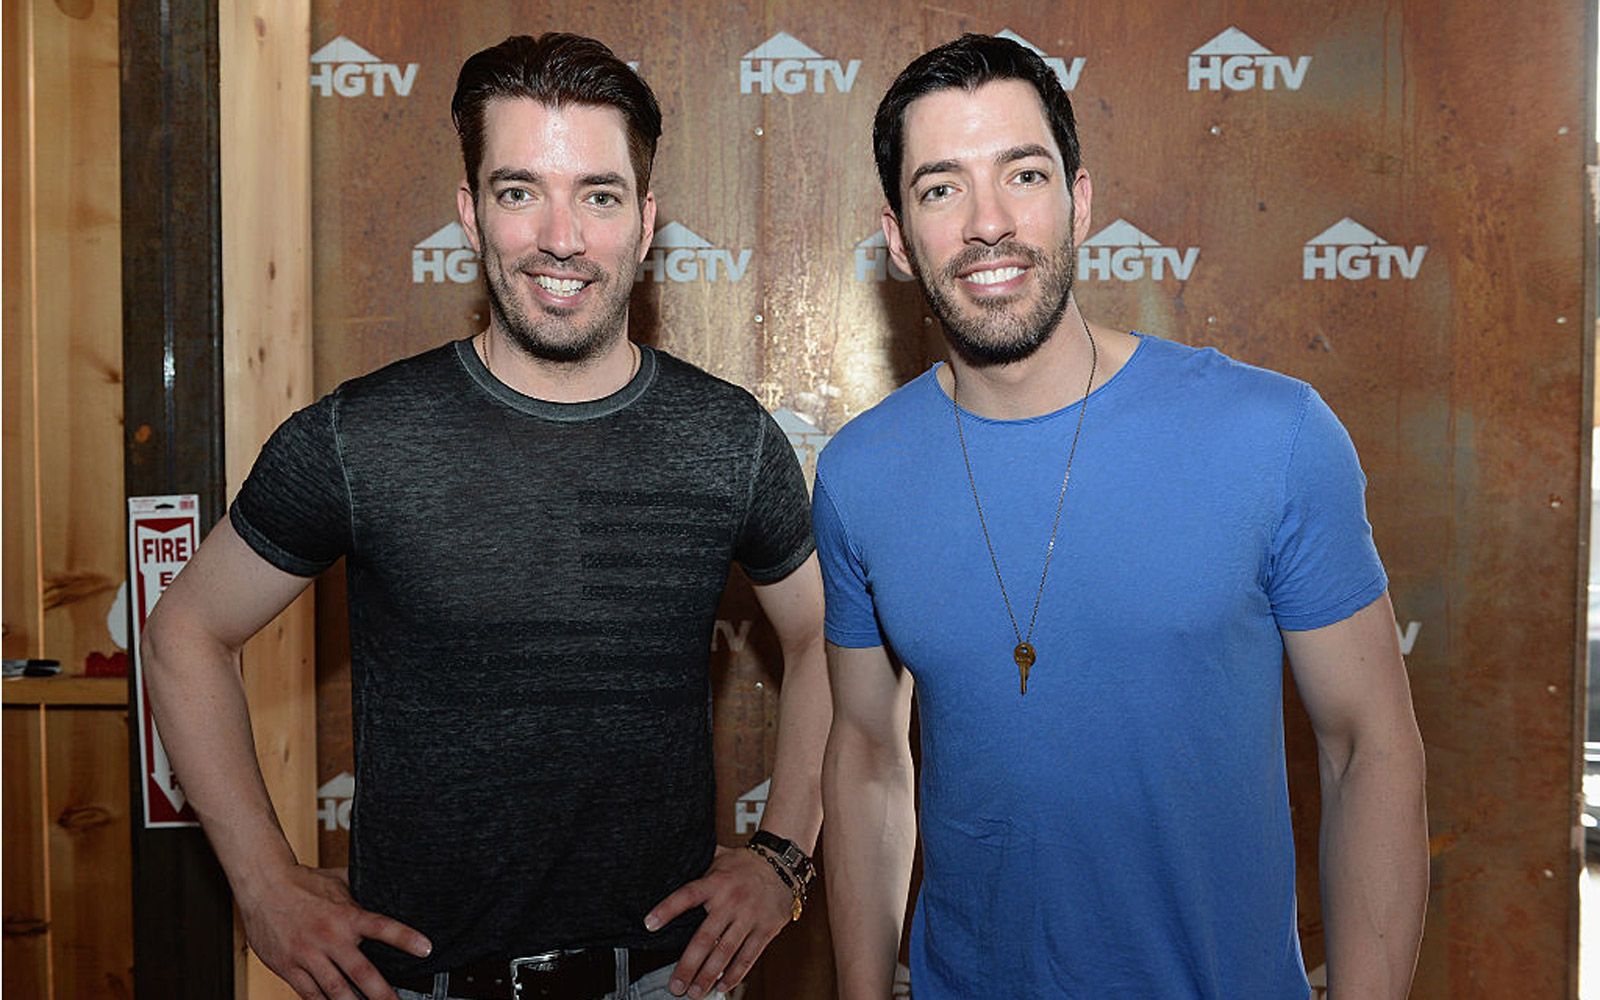 You Will Not Believe How Much Your Favorite HGTV Stars Make